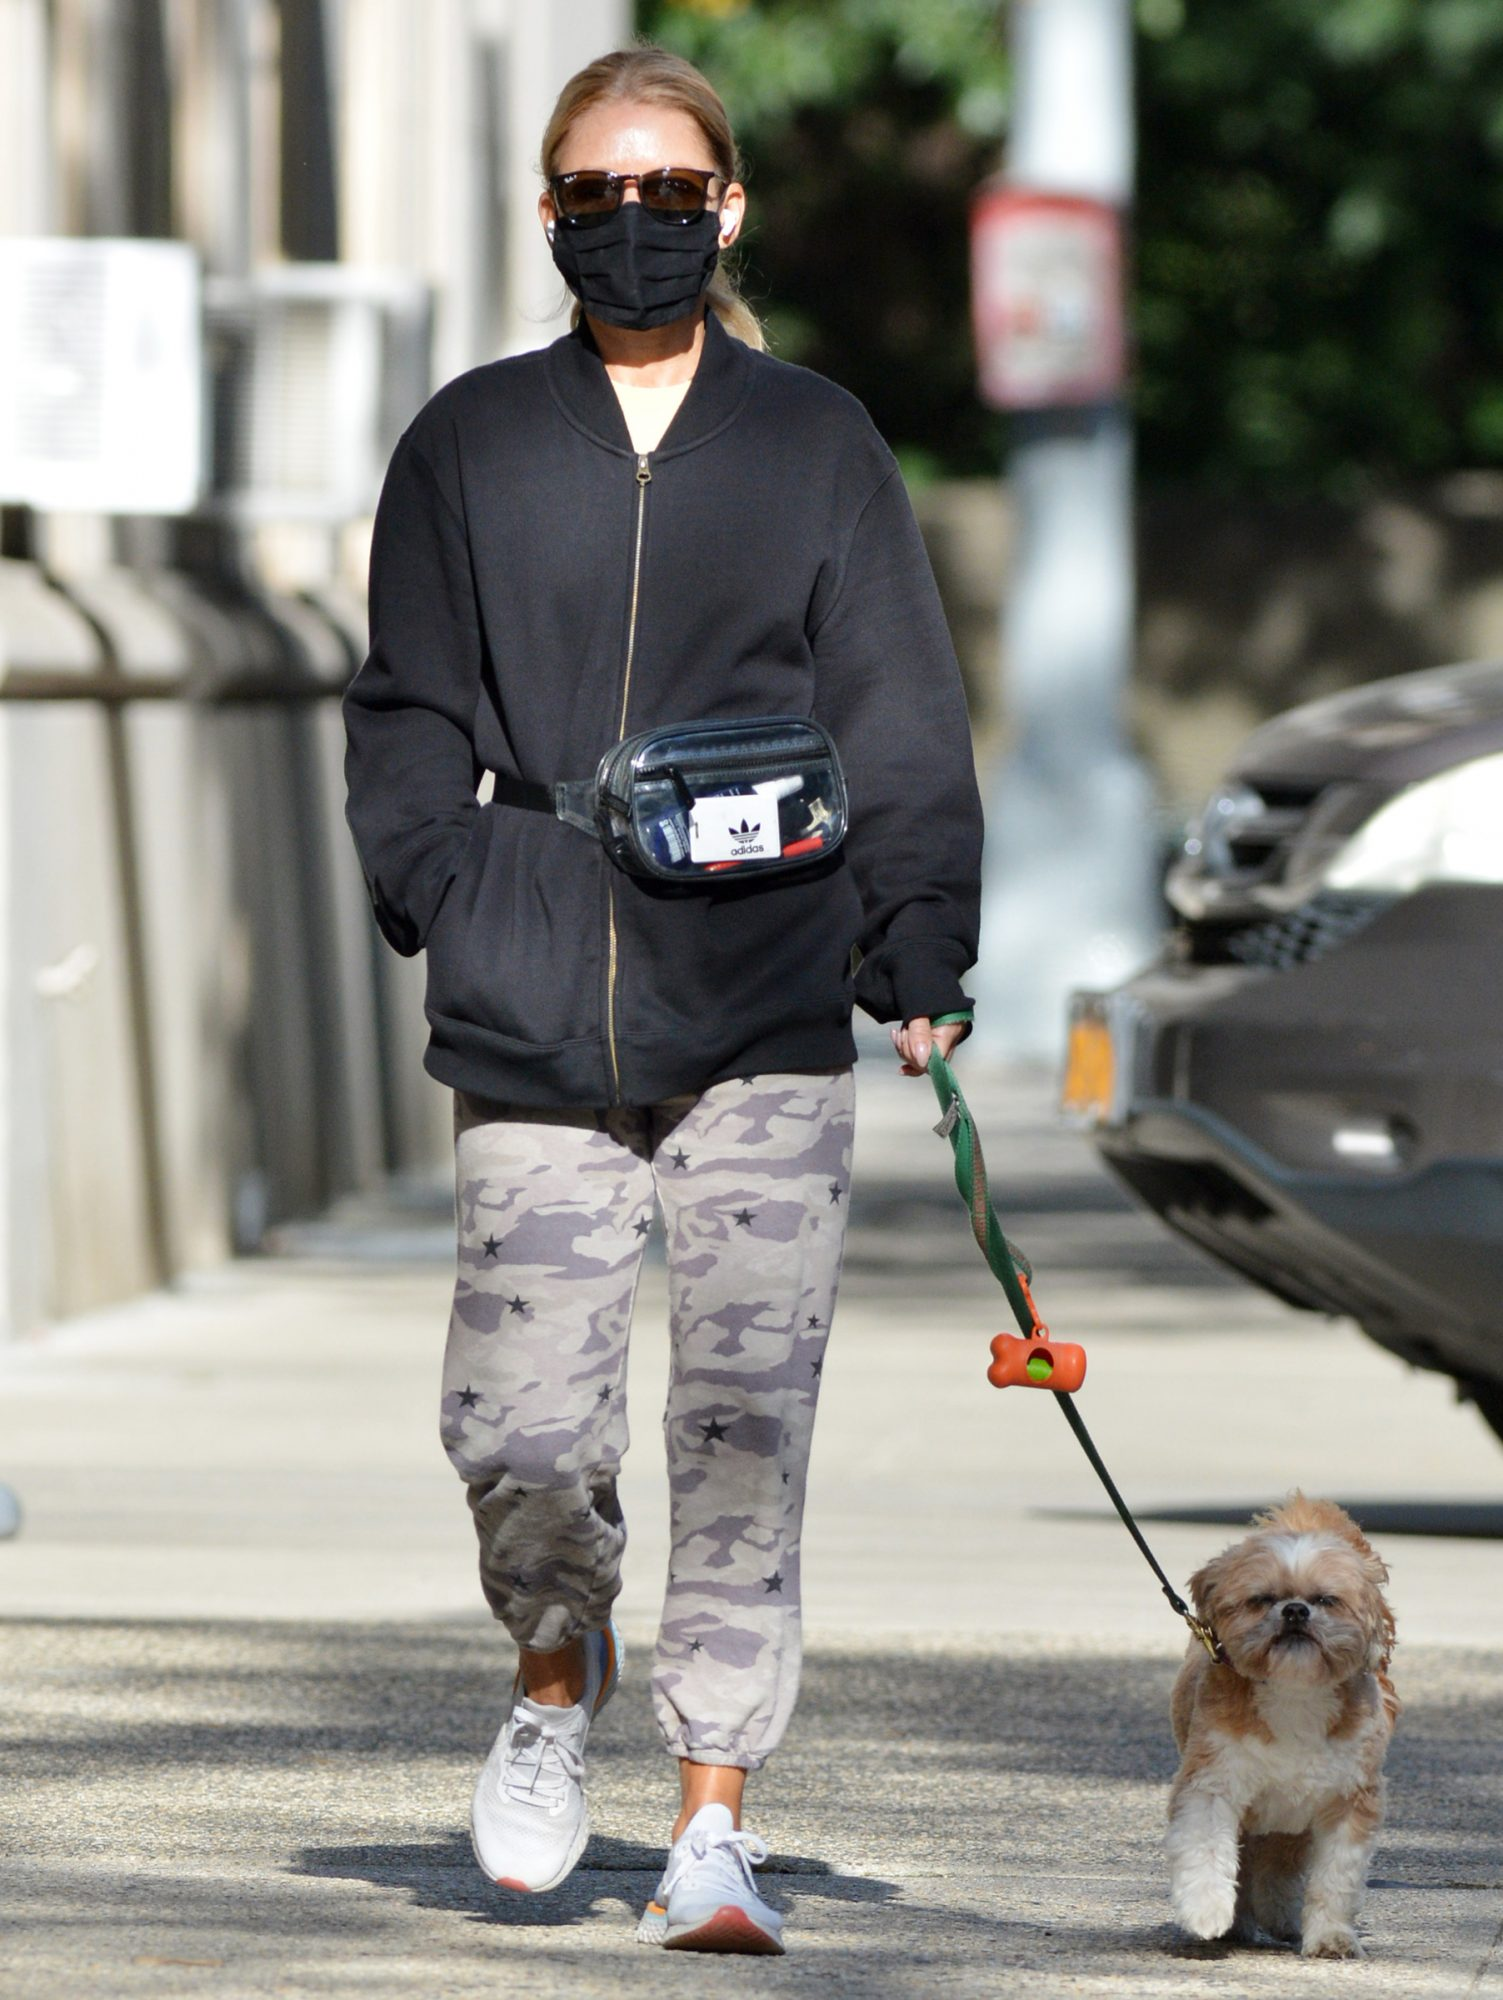 Kelly Ripa Takes Her Dog Chewy Out For a Walk in New York City.